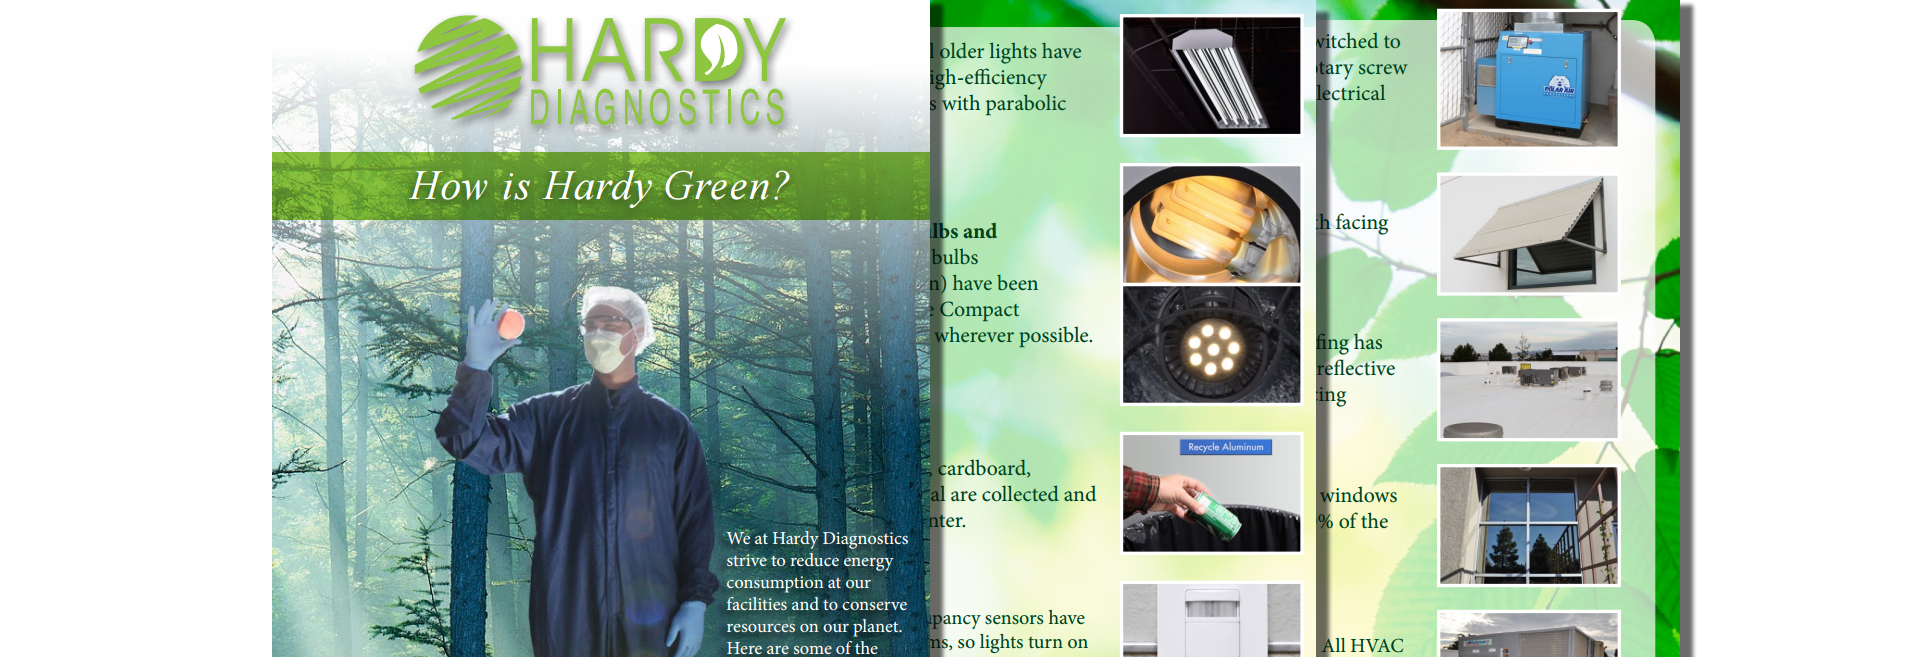 Green Efforts: Brochure Tiled